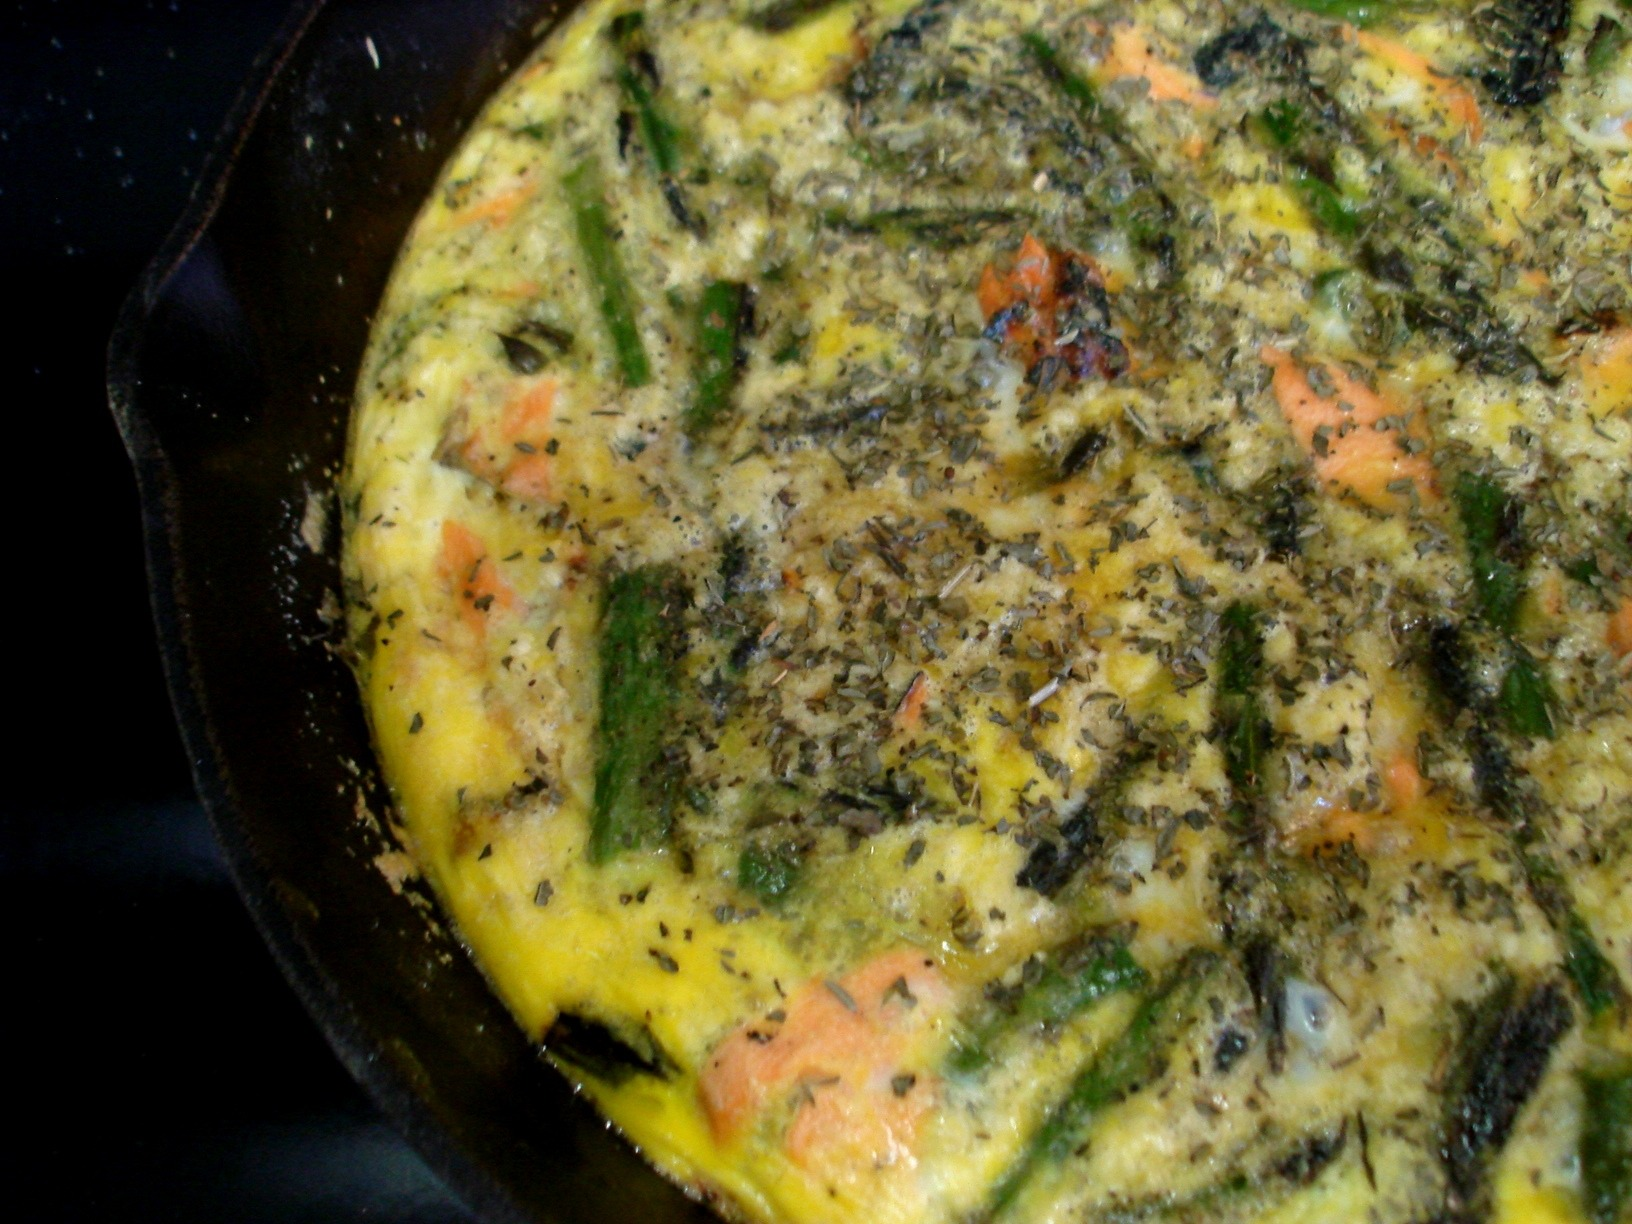 ... frittata with parmesan and chives spring onion smoked salmon frittata